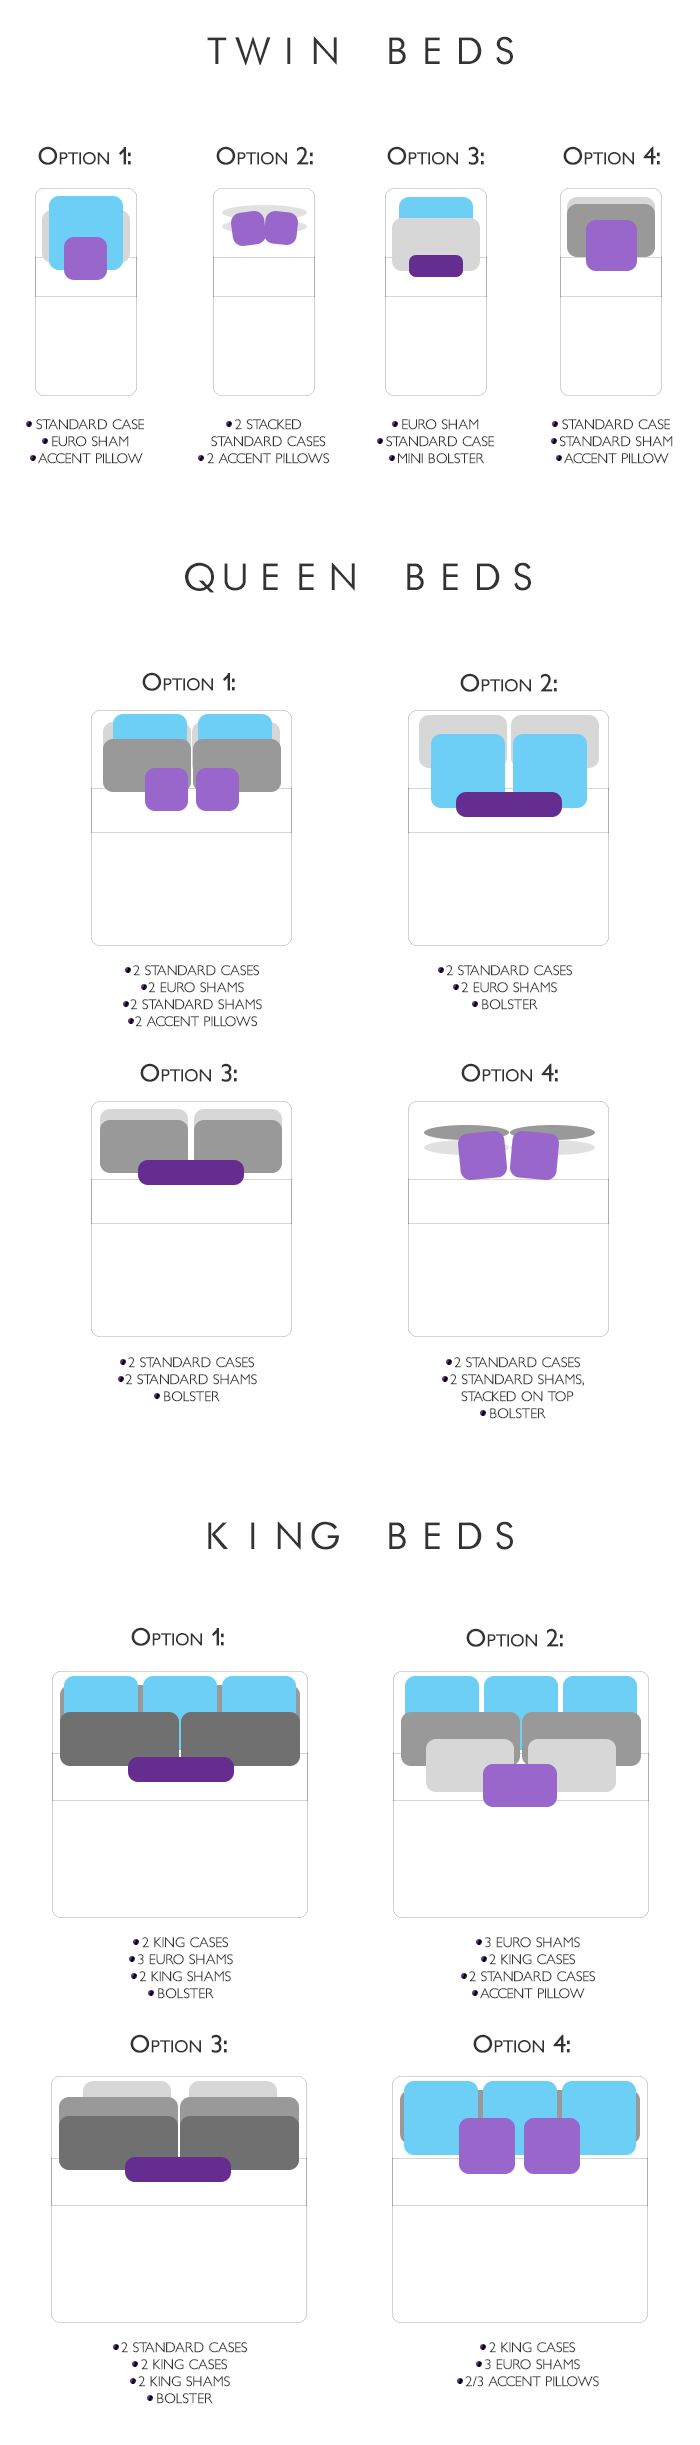 Bedding pillow options ISABELLA STUDIO - Page 4 of 21 -ISABELLA STUDIO | Page 4